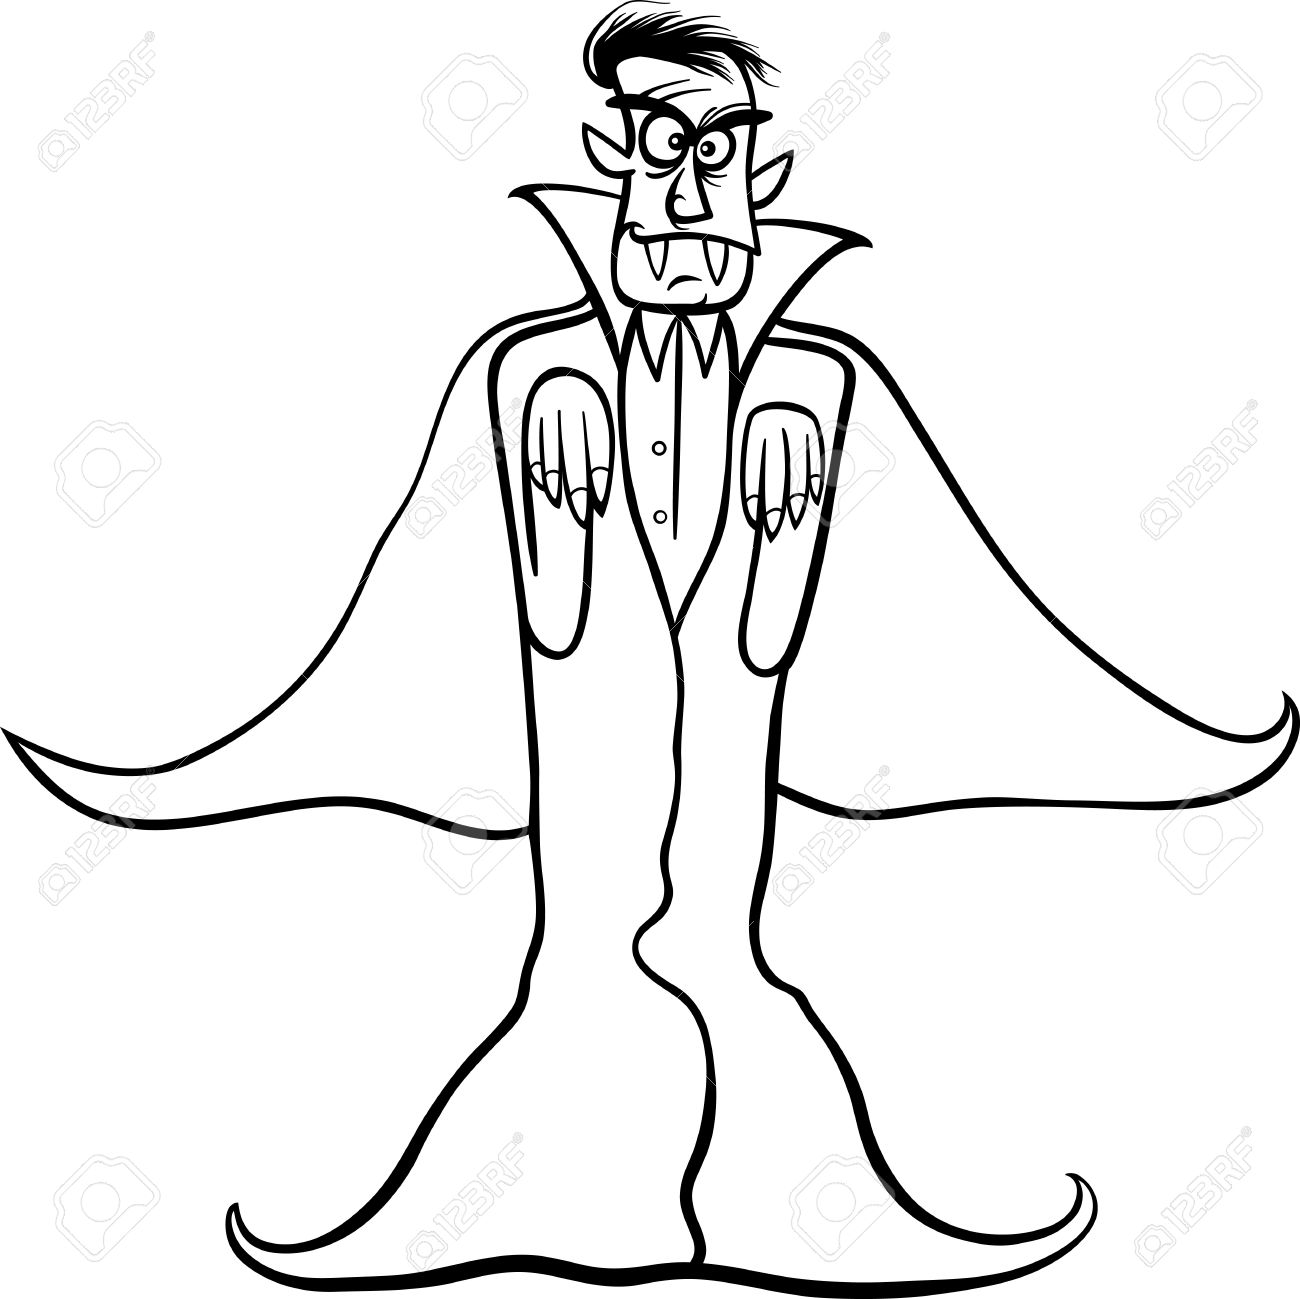 1300x1299 Black And White Cartoon Illustration Of Scary Count Dracula